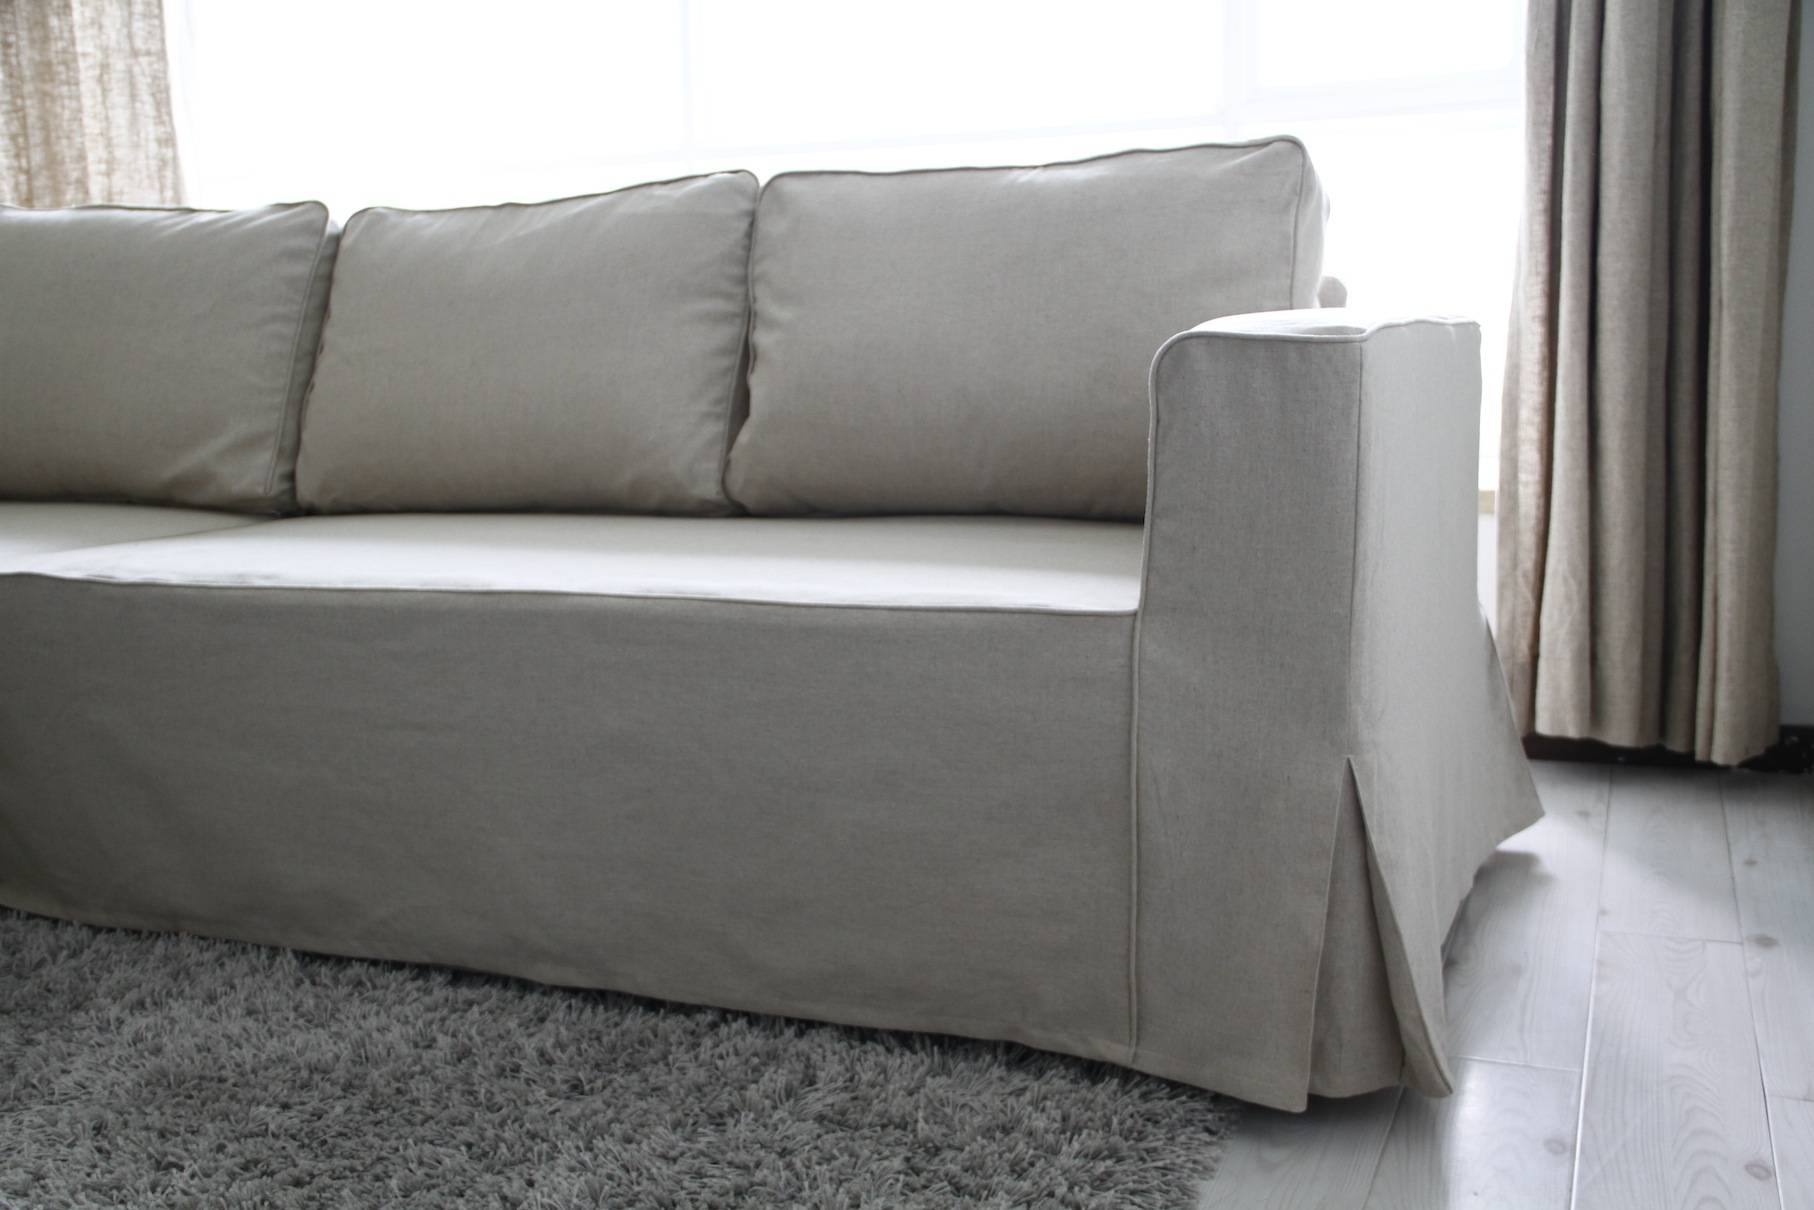 fitted chair covers for cheap best bouncy baby with reflux luxury sofa suppliers sofas